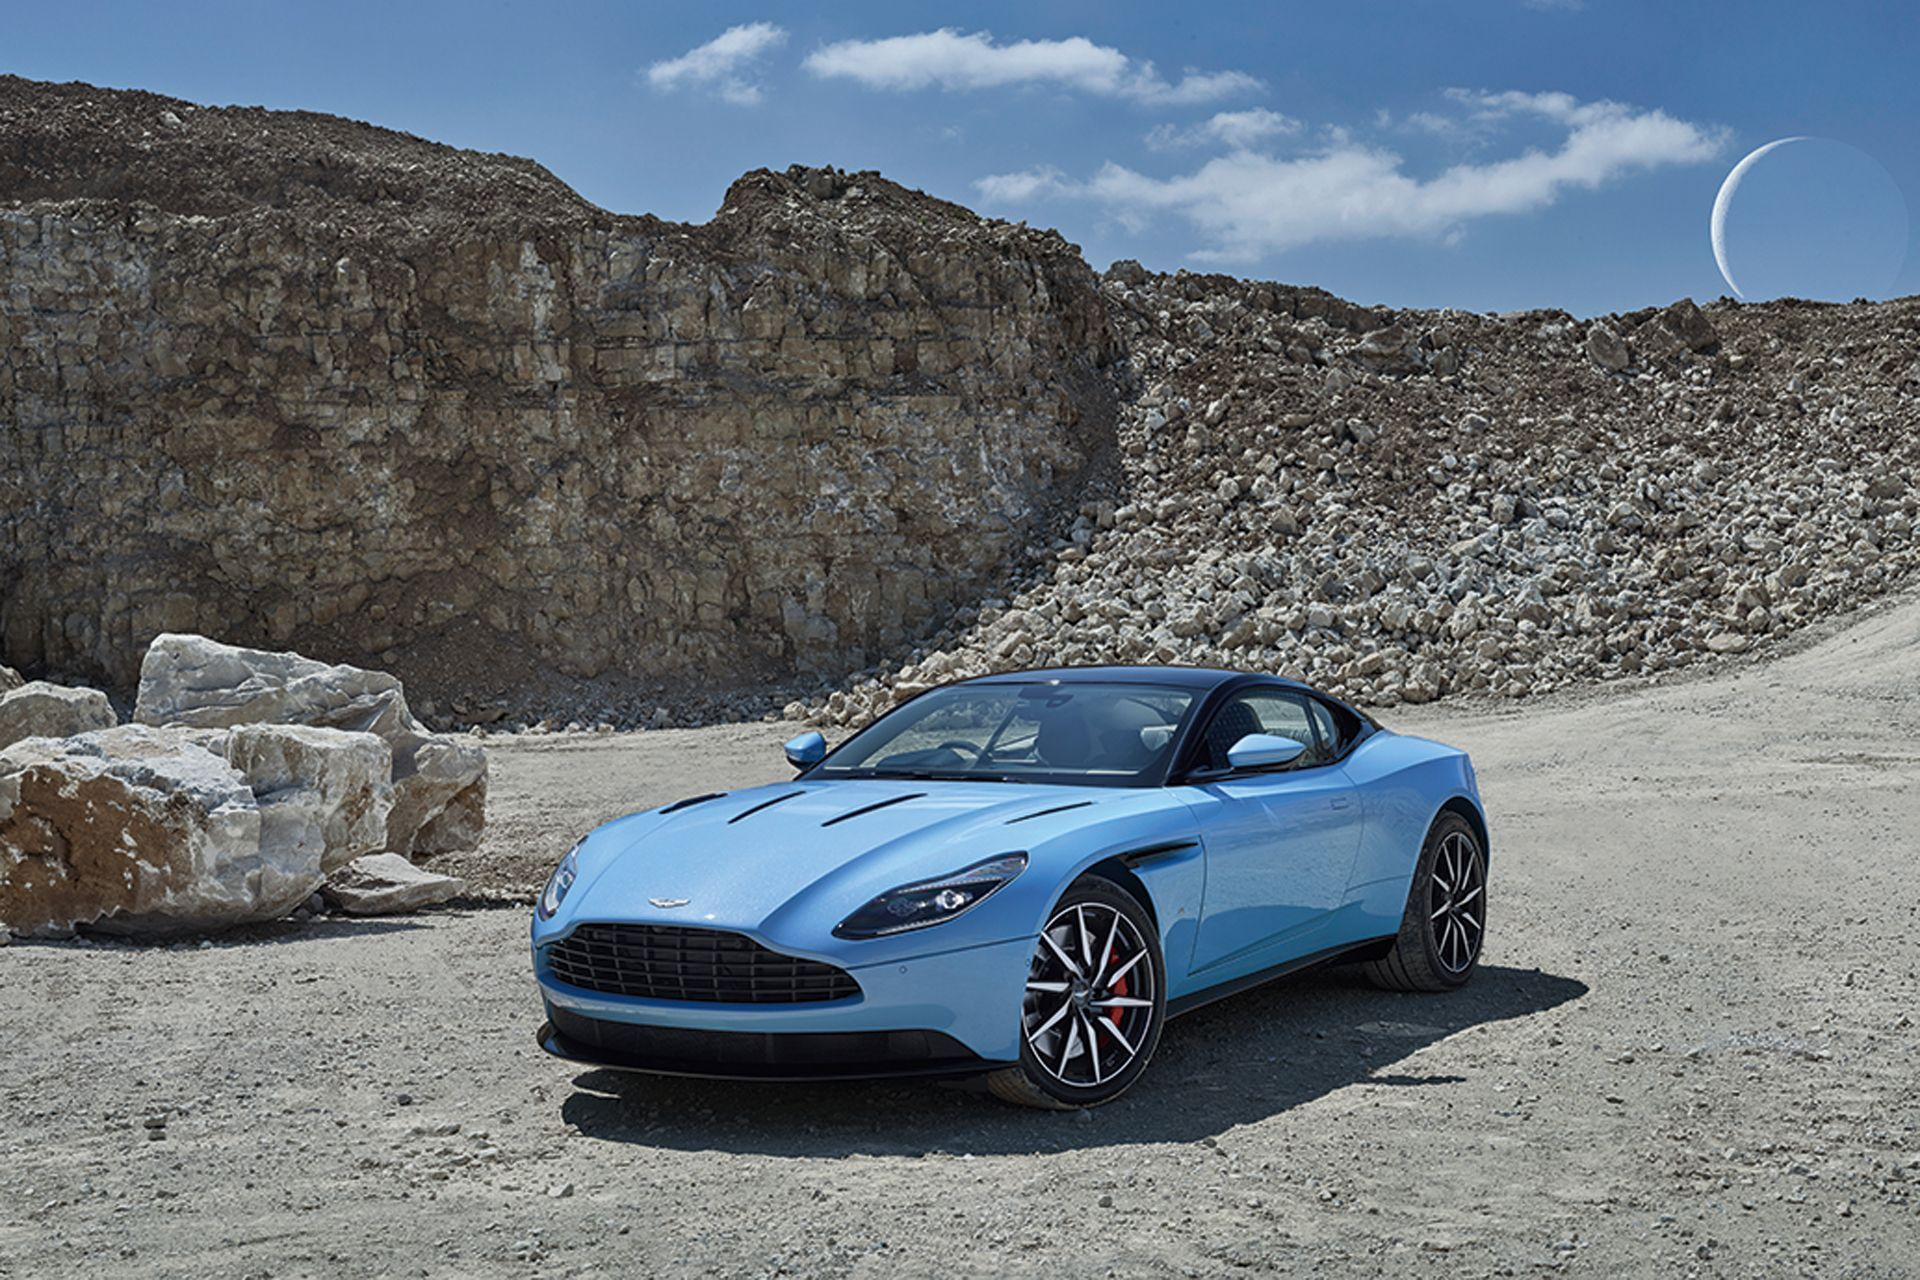 The Aston Martin Db11 Is Our New Favourite Tourer Aston Martin Db11 Aston Martin Aston